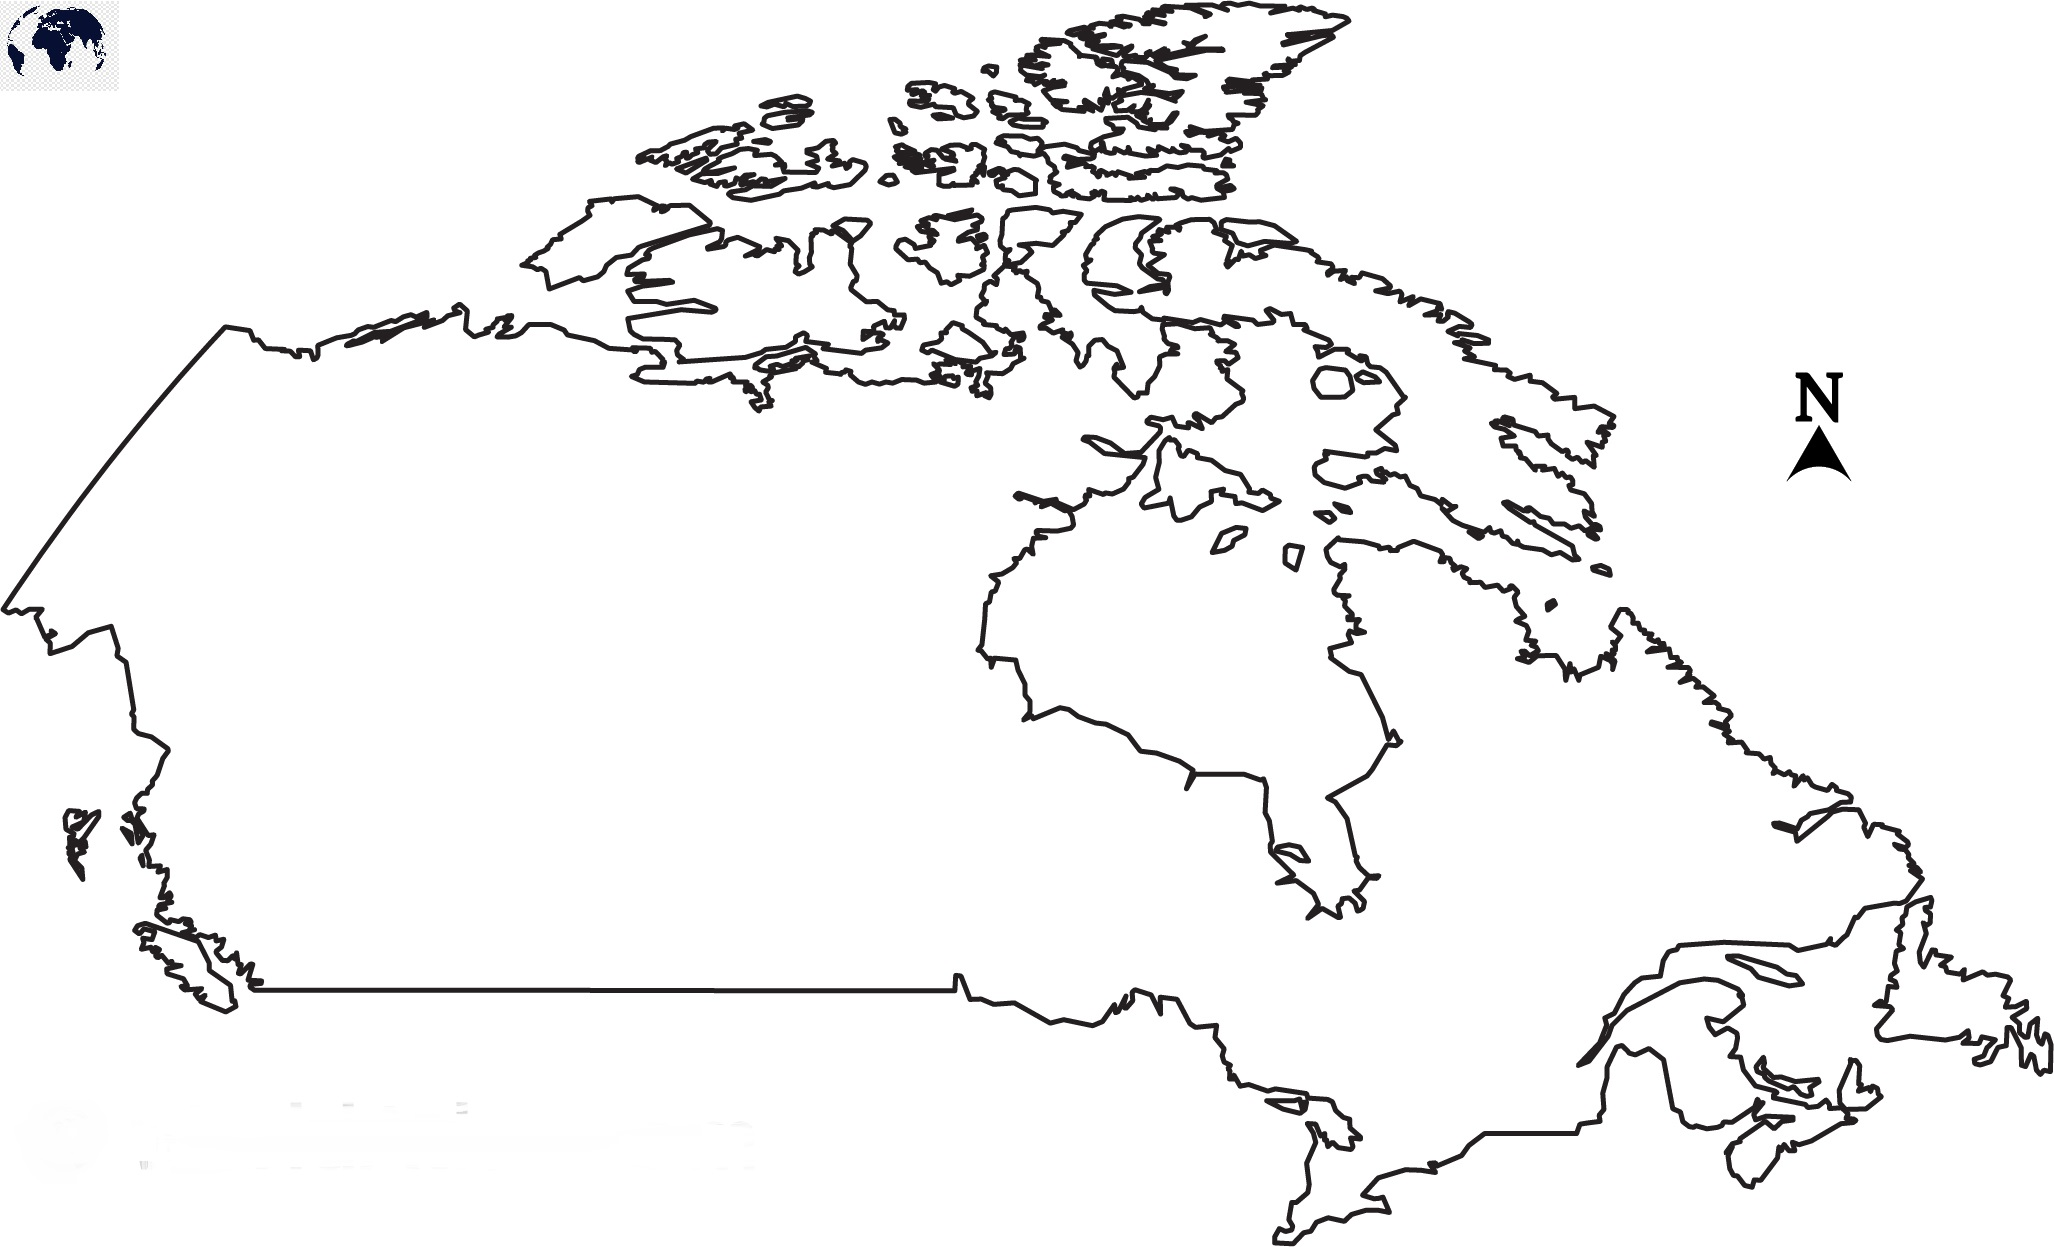 Blank Map of Canada - Outline